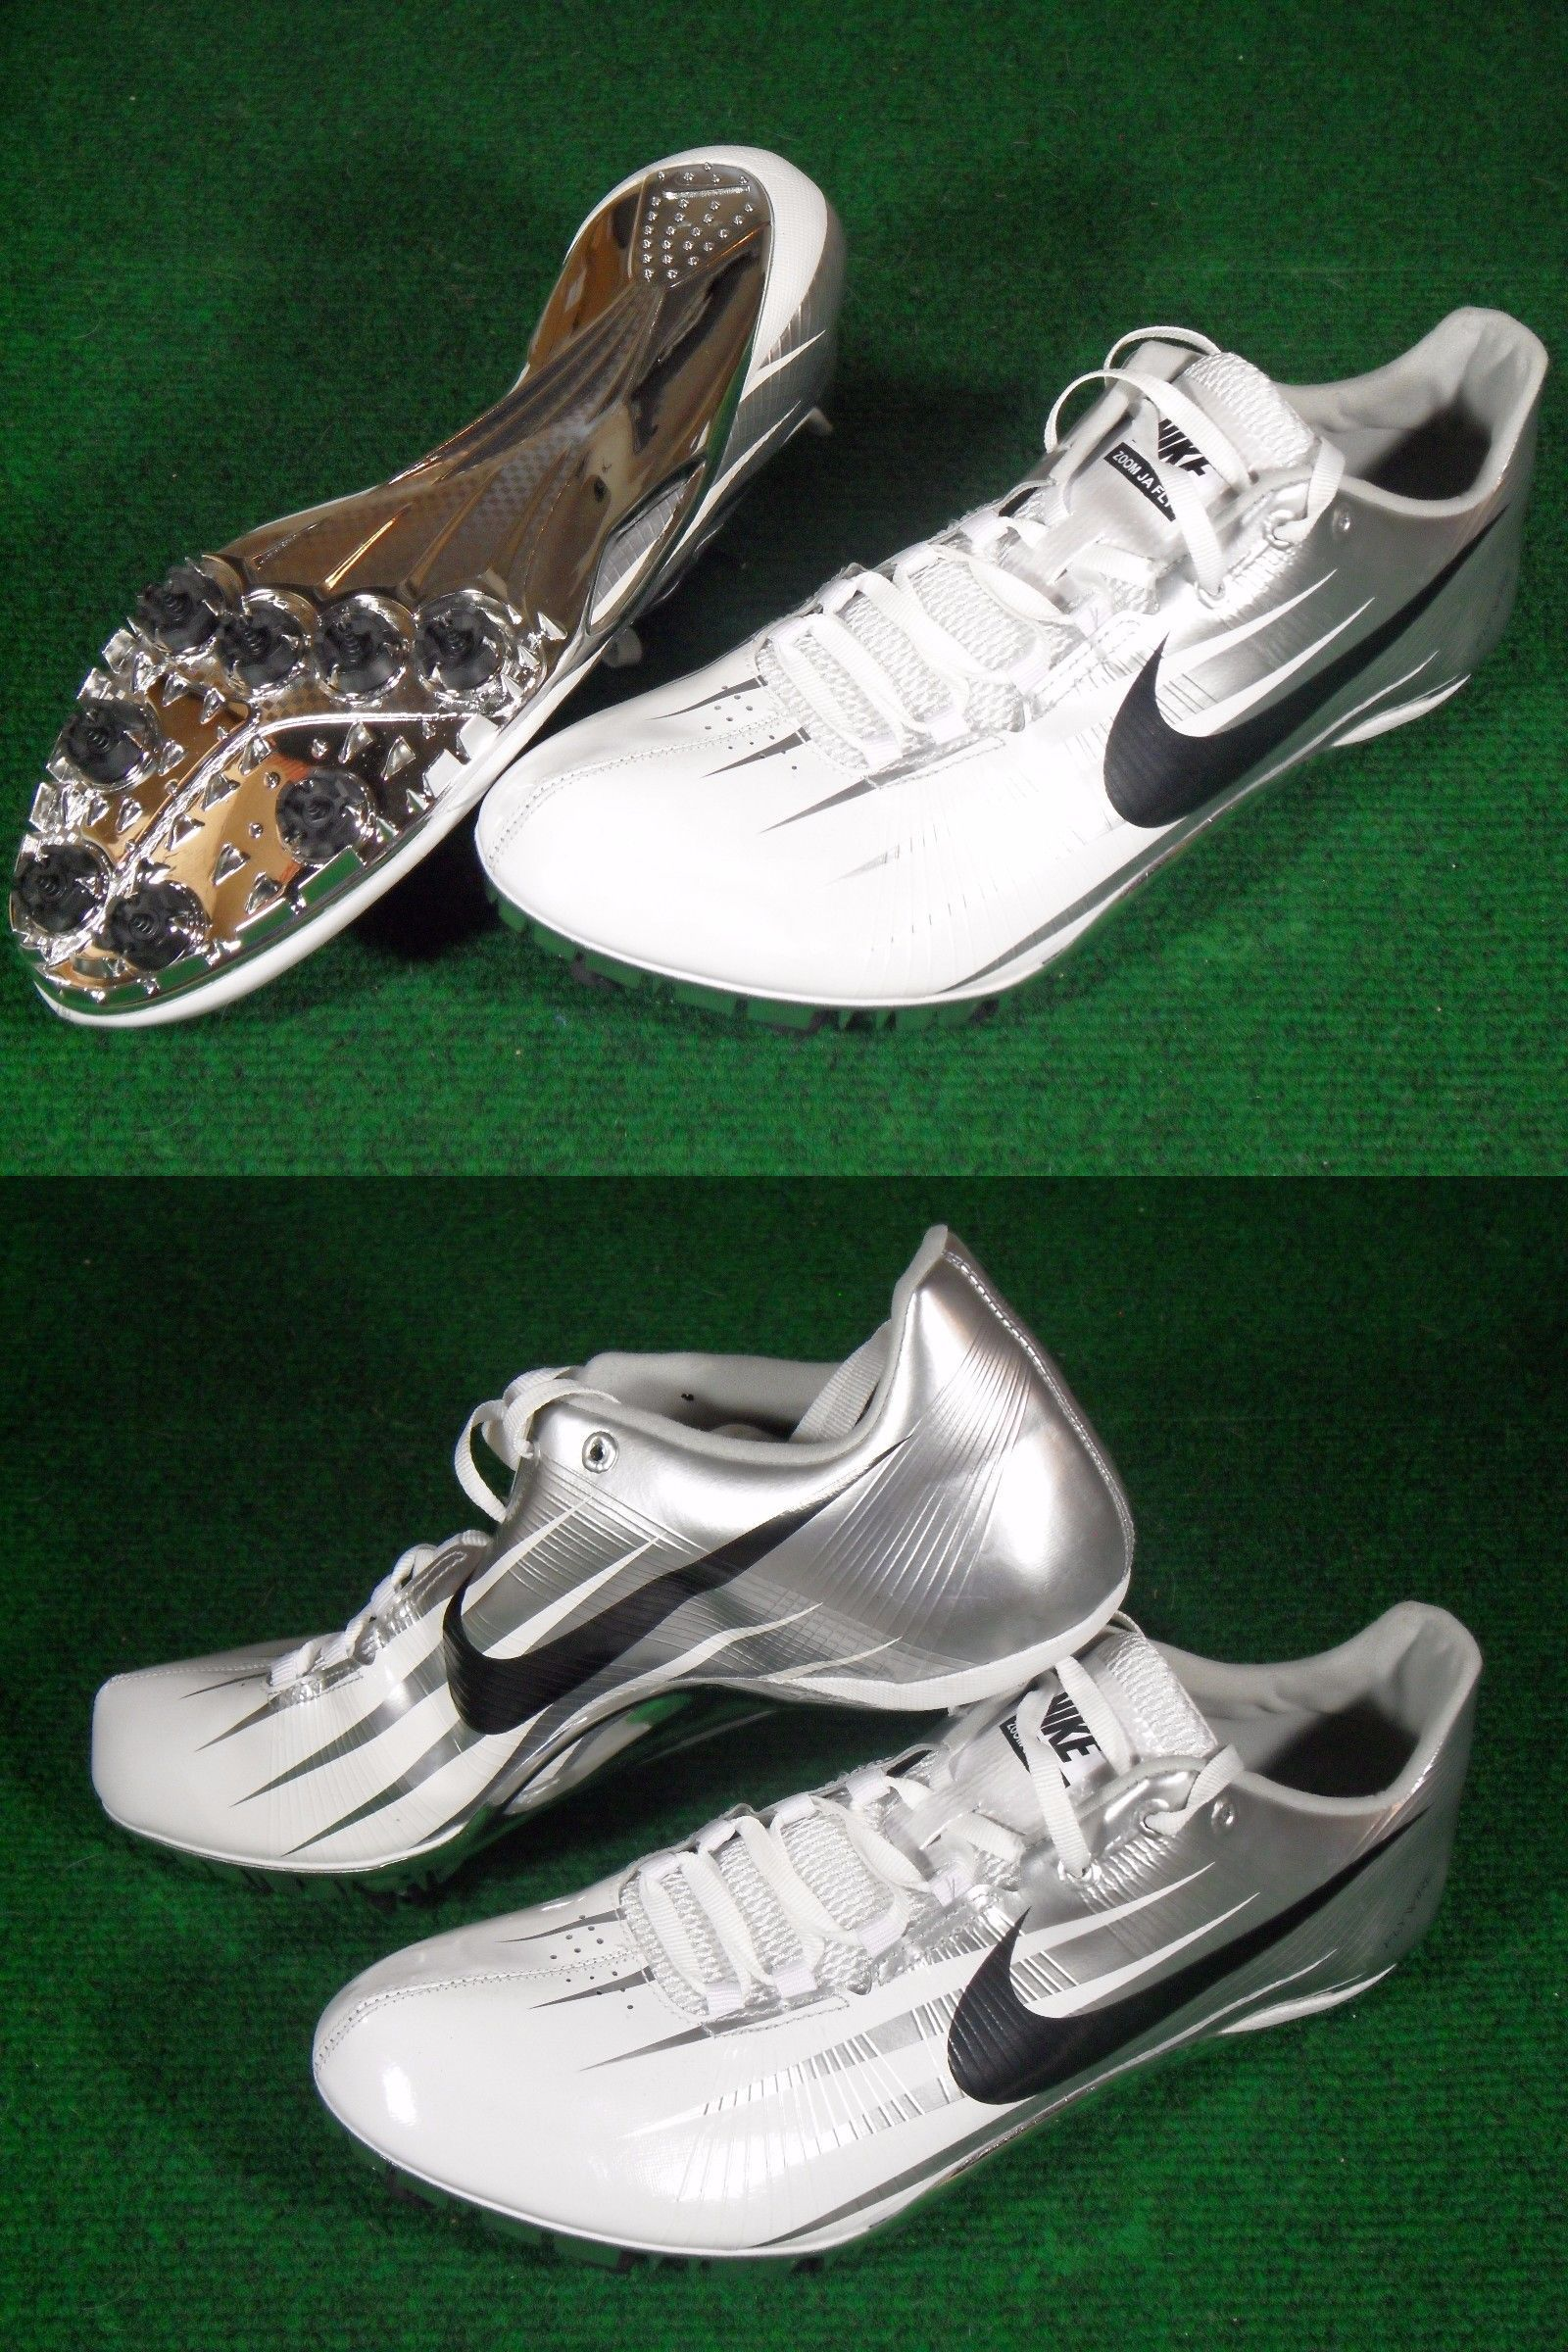 hot sale online b12c0 716bc Track and Field 106981 Mens Nike Ja Fly Track Sprinter Running Spikes  Cleats White Silver Chrome 11.5 - BUY IT NOW ONLY 75 on eBay!